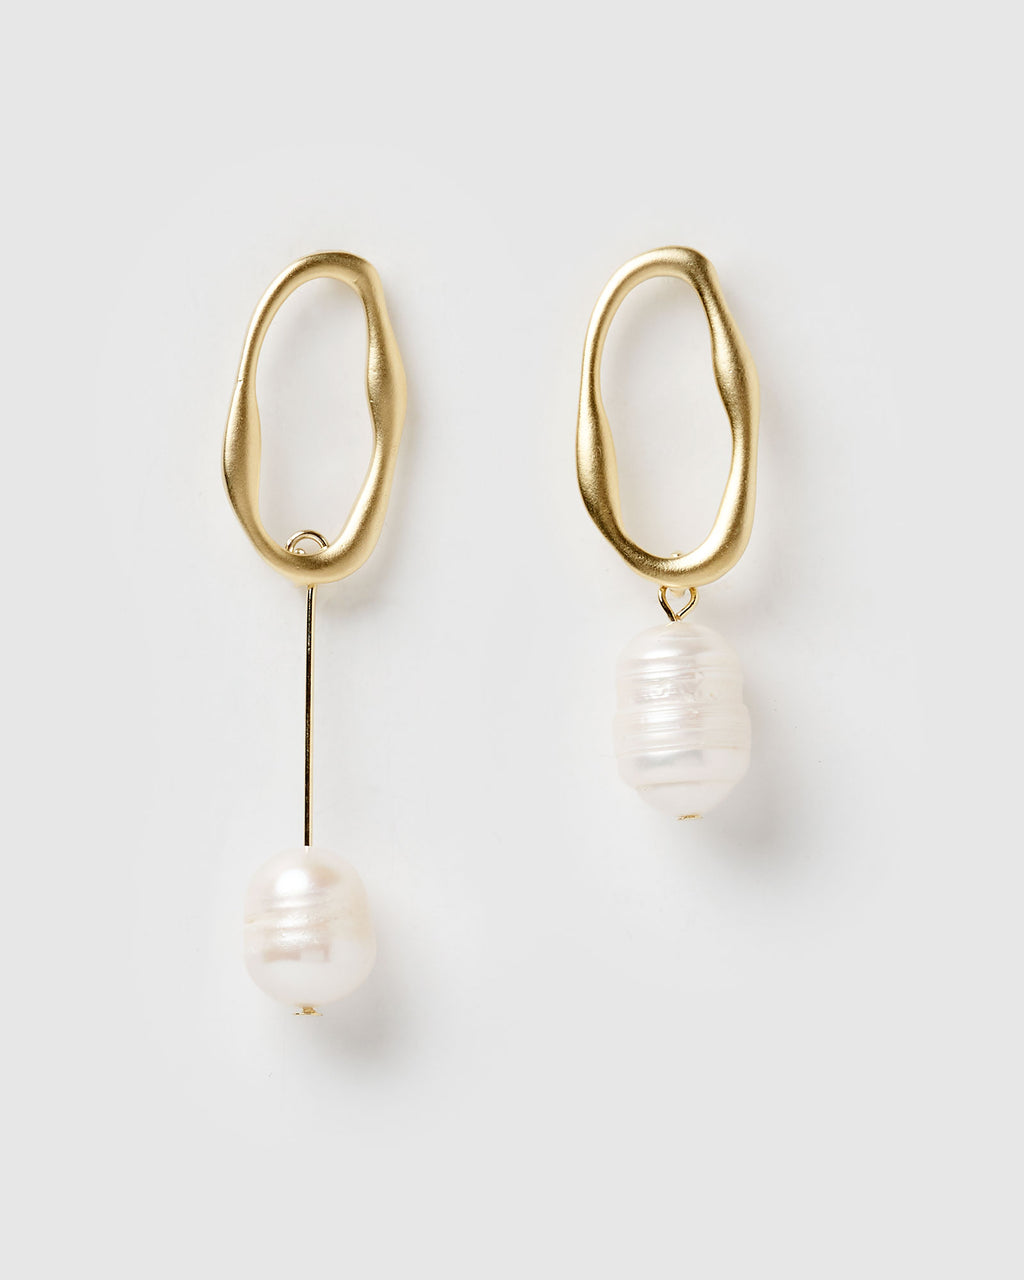 Izoa Bodywork Earrings Gold Freshwater Pearl